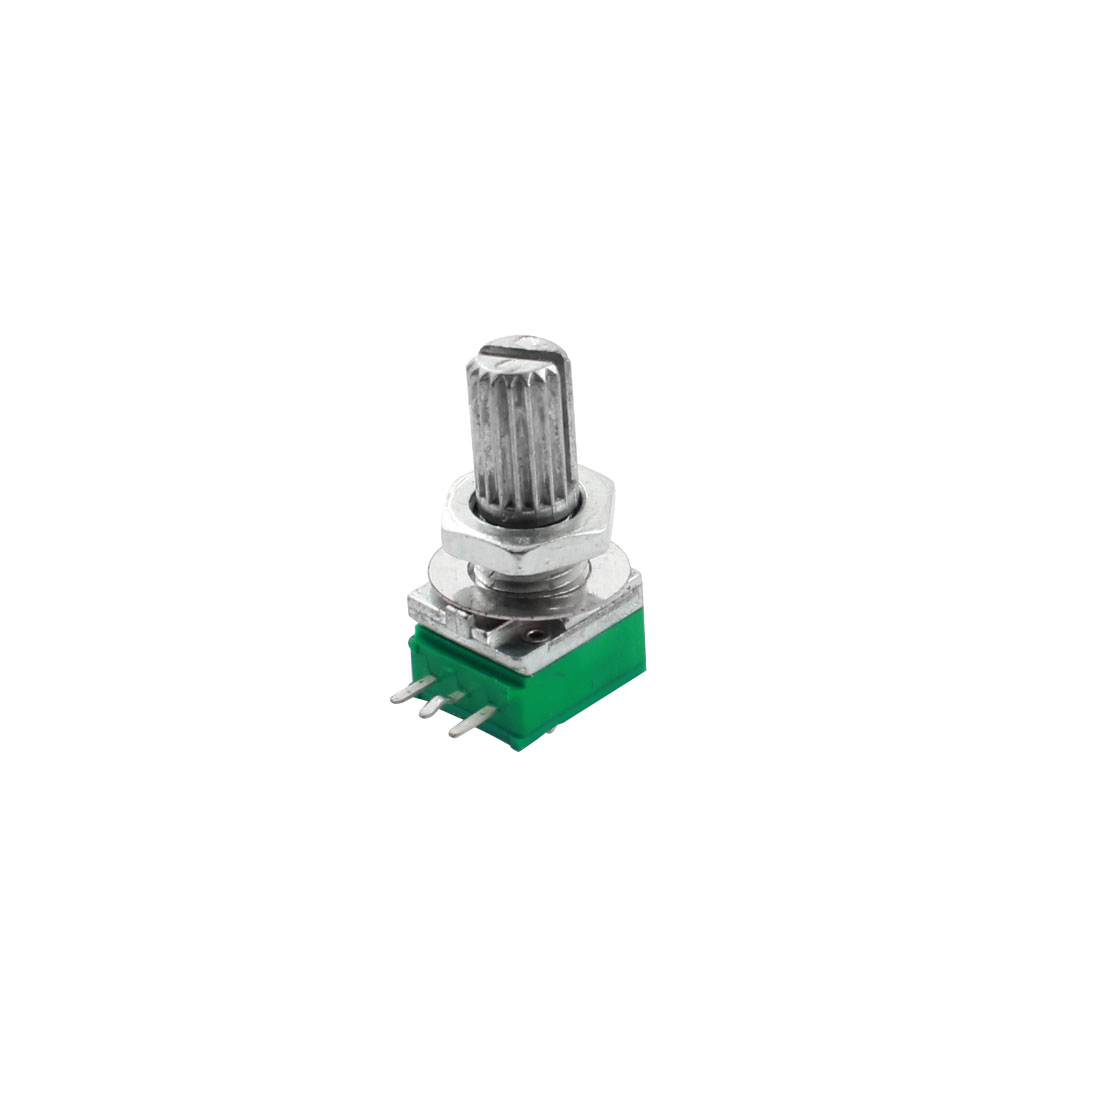 5K Ohm 7mm Dia Thread 6mm Knurled Shaft Through Hole Mount Linear Type B Rotary Taper Potentiometer